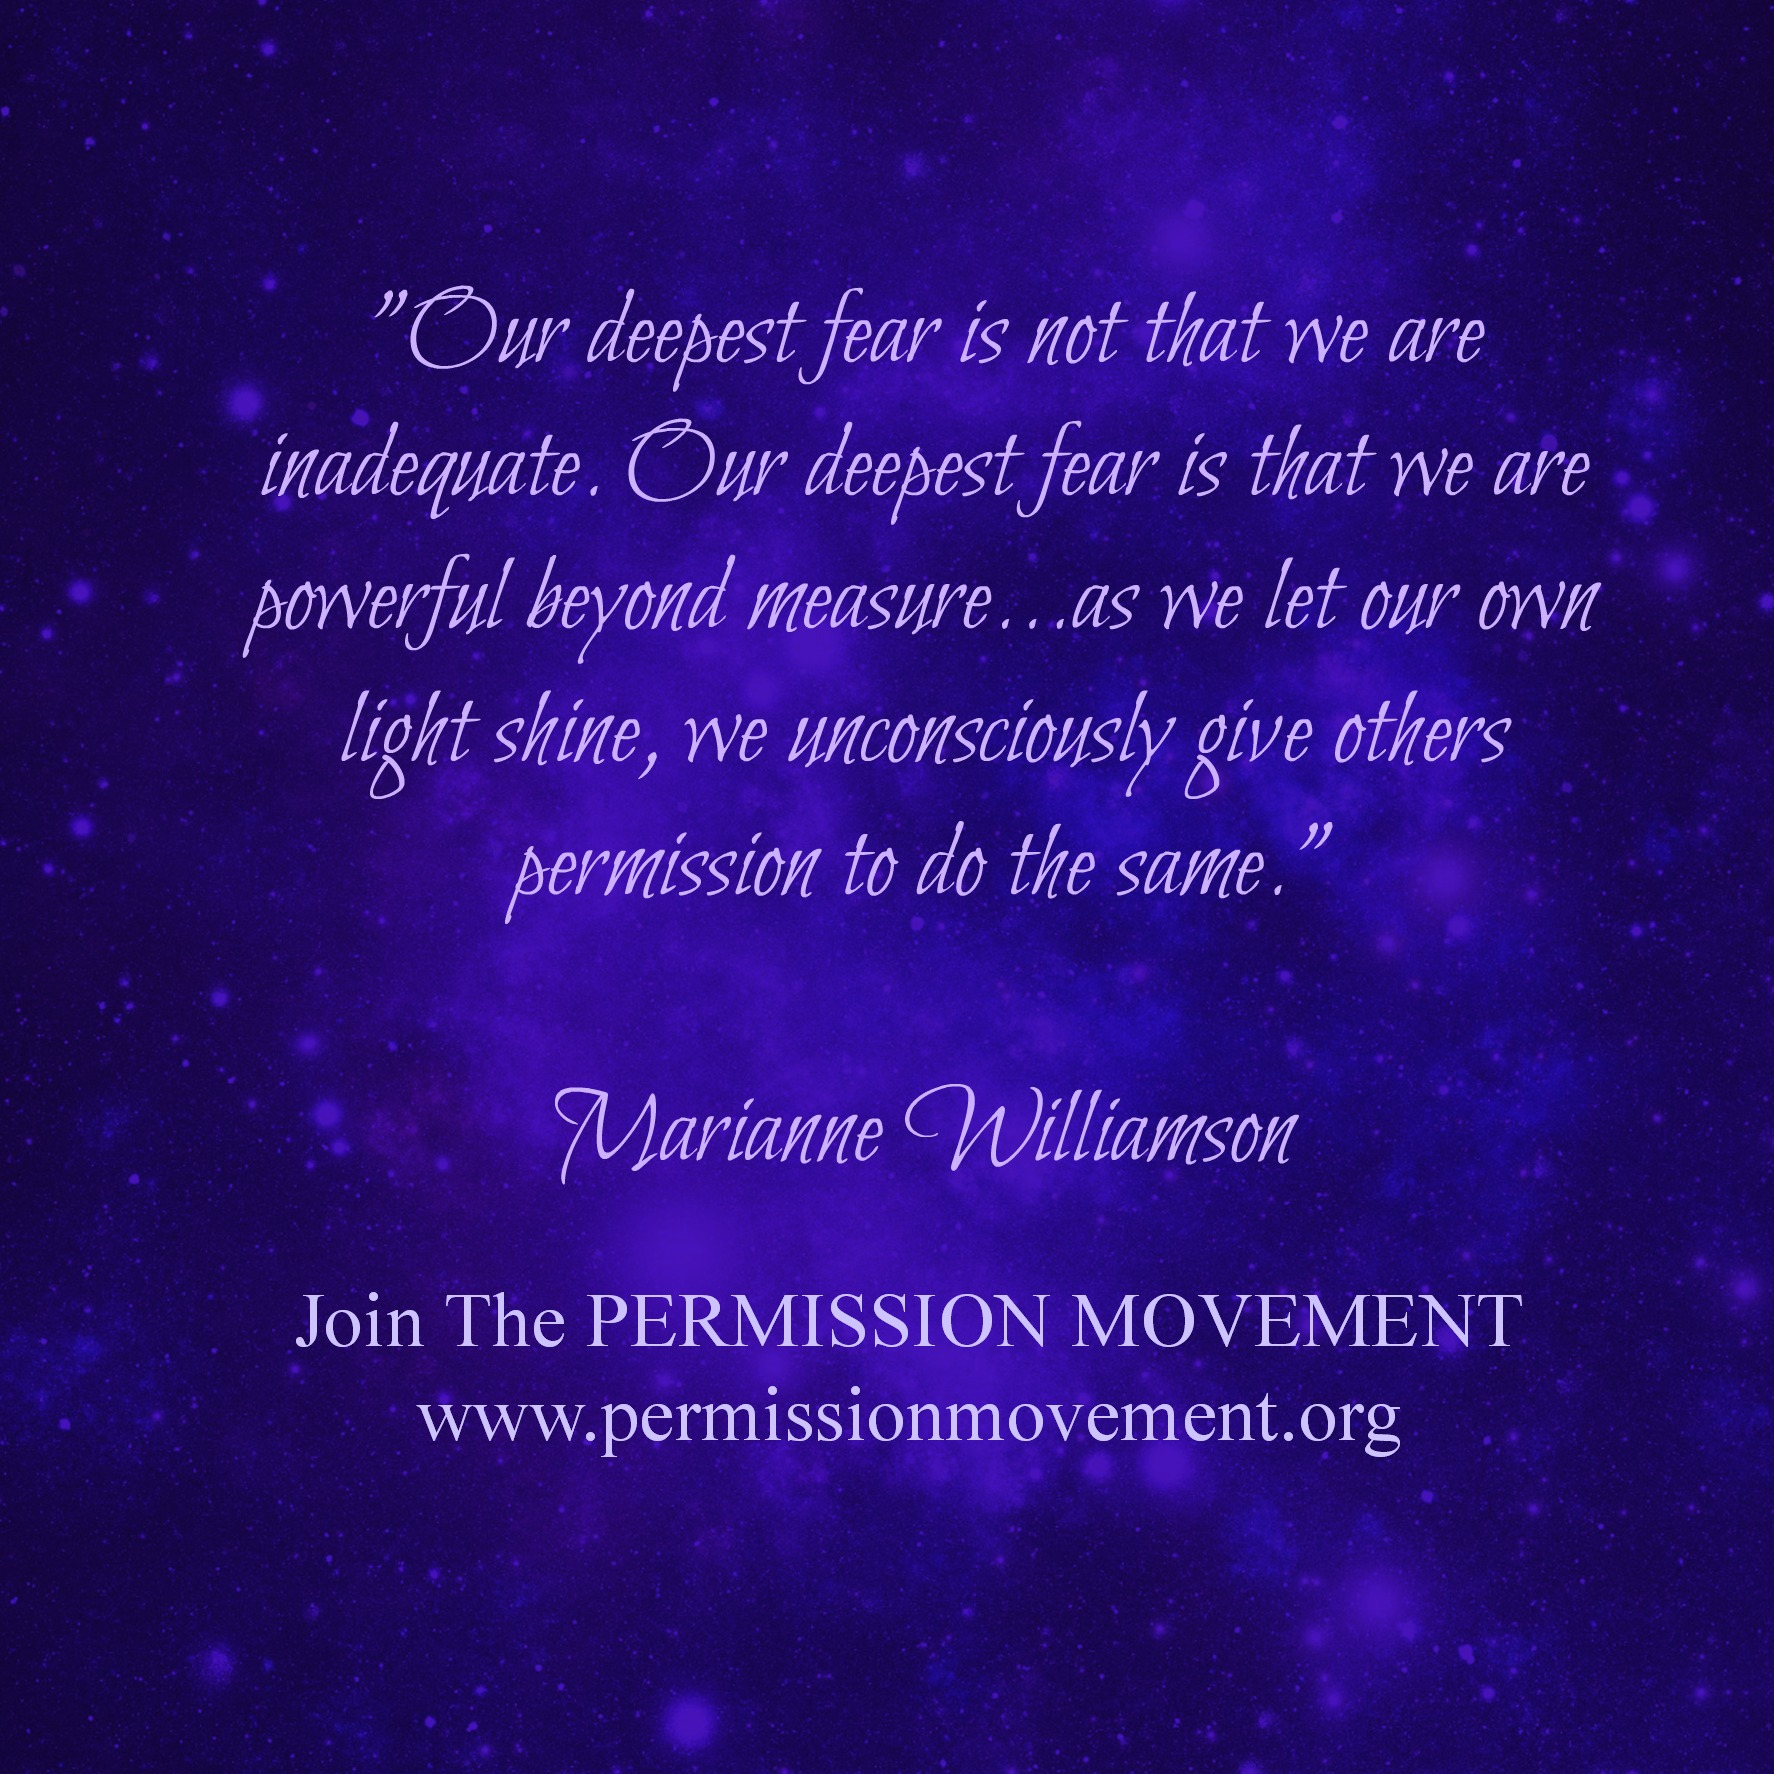 MarianneWilliamson_OurDeepestFear_PowerfulBeyondMeasure_053114